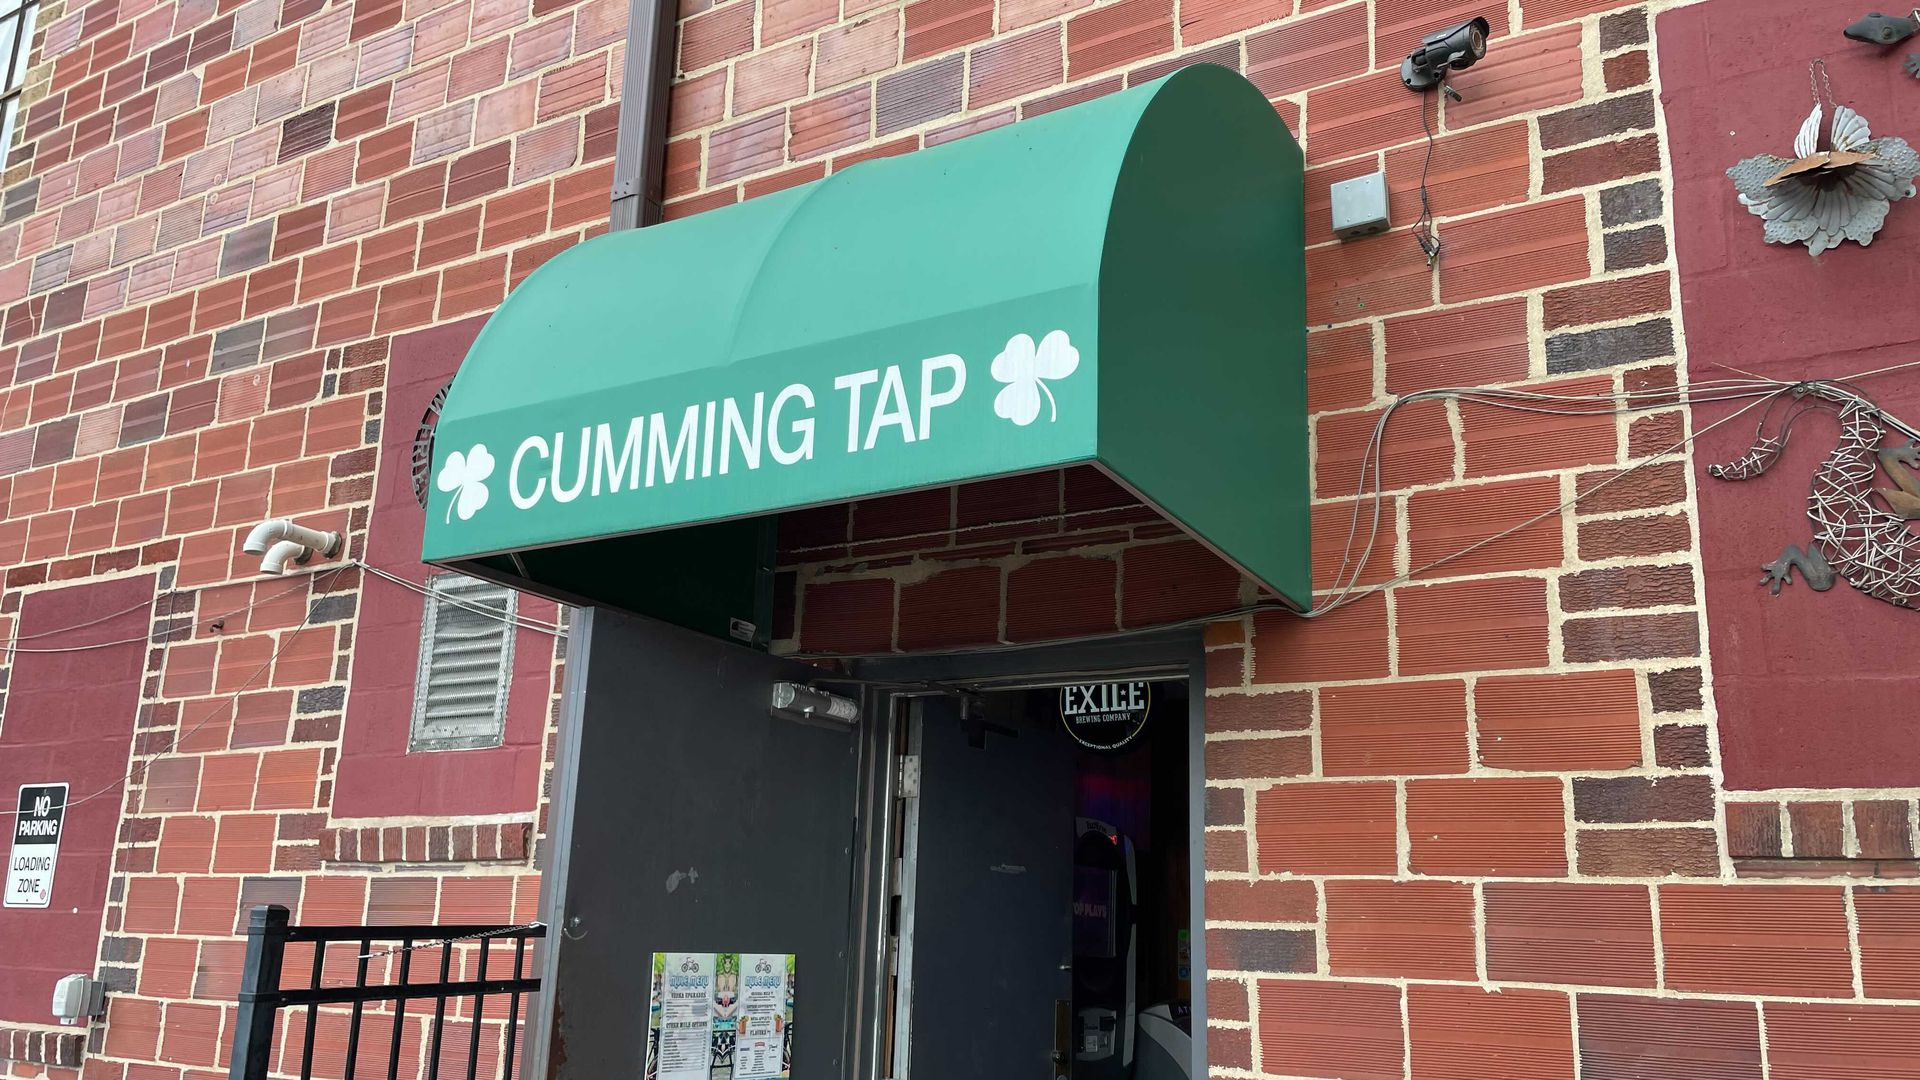 Outside the Cumming Tap bar